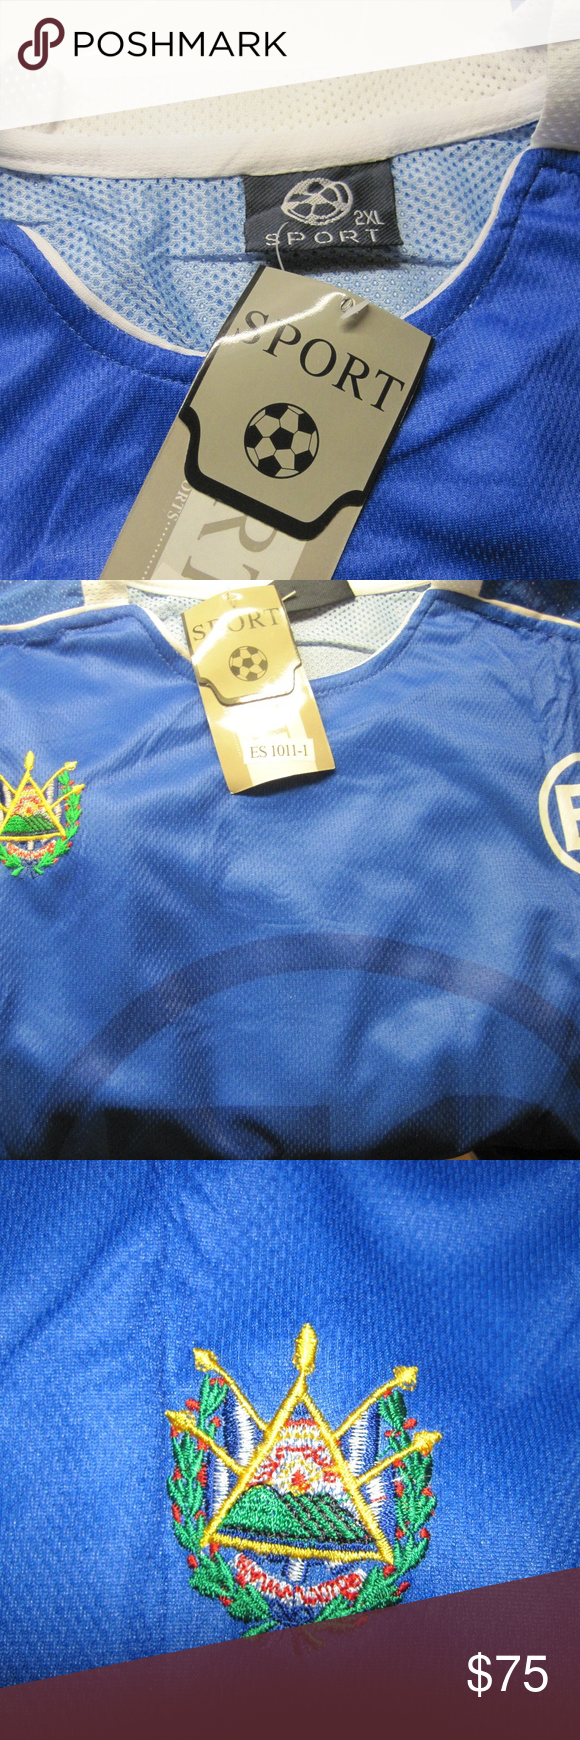 4c5bdc4e8 2XL Men s Soccer Jersey with Emblem of El Salvador Limited and hard-to-find  jersey. See photos for additional details. Shirts